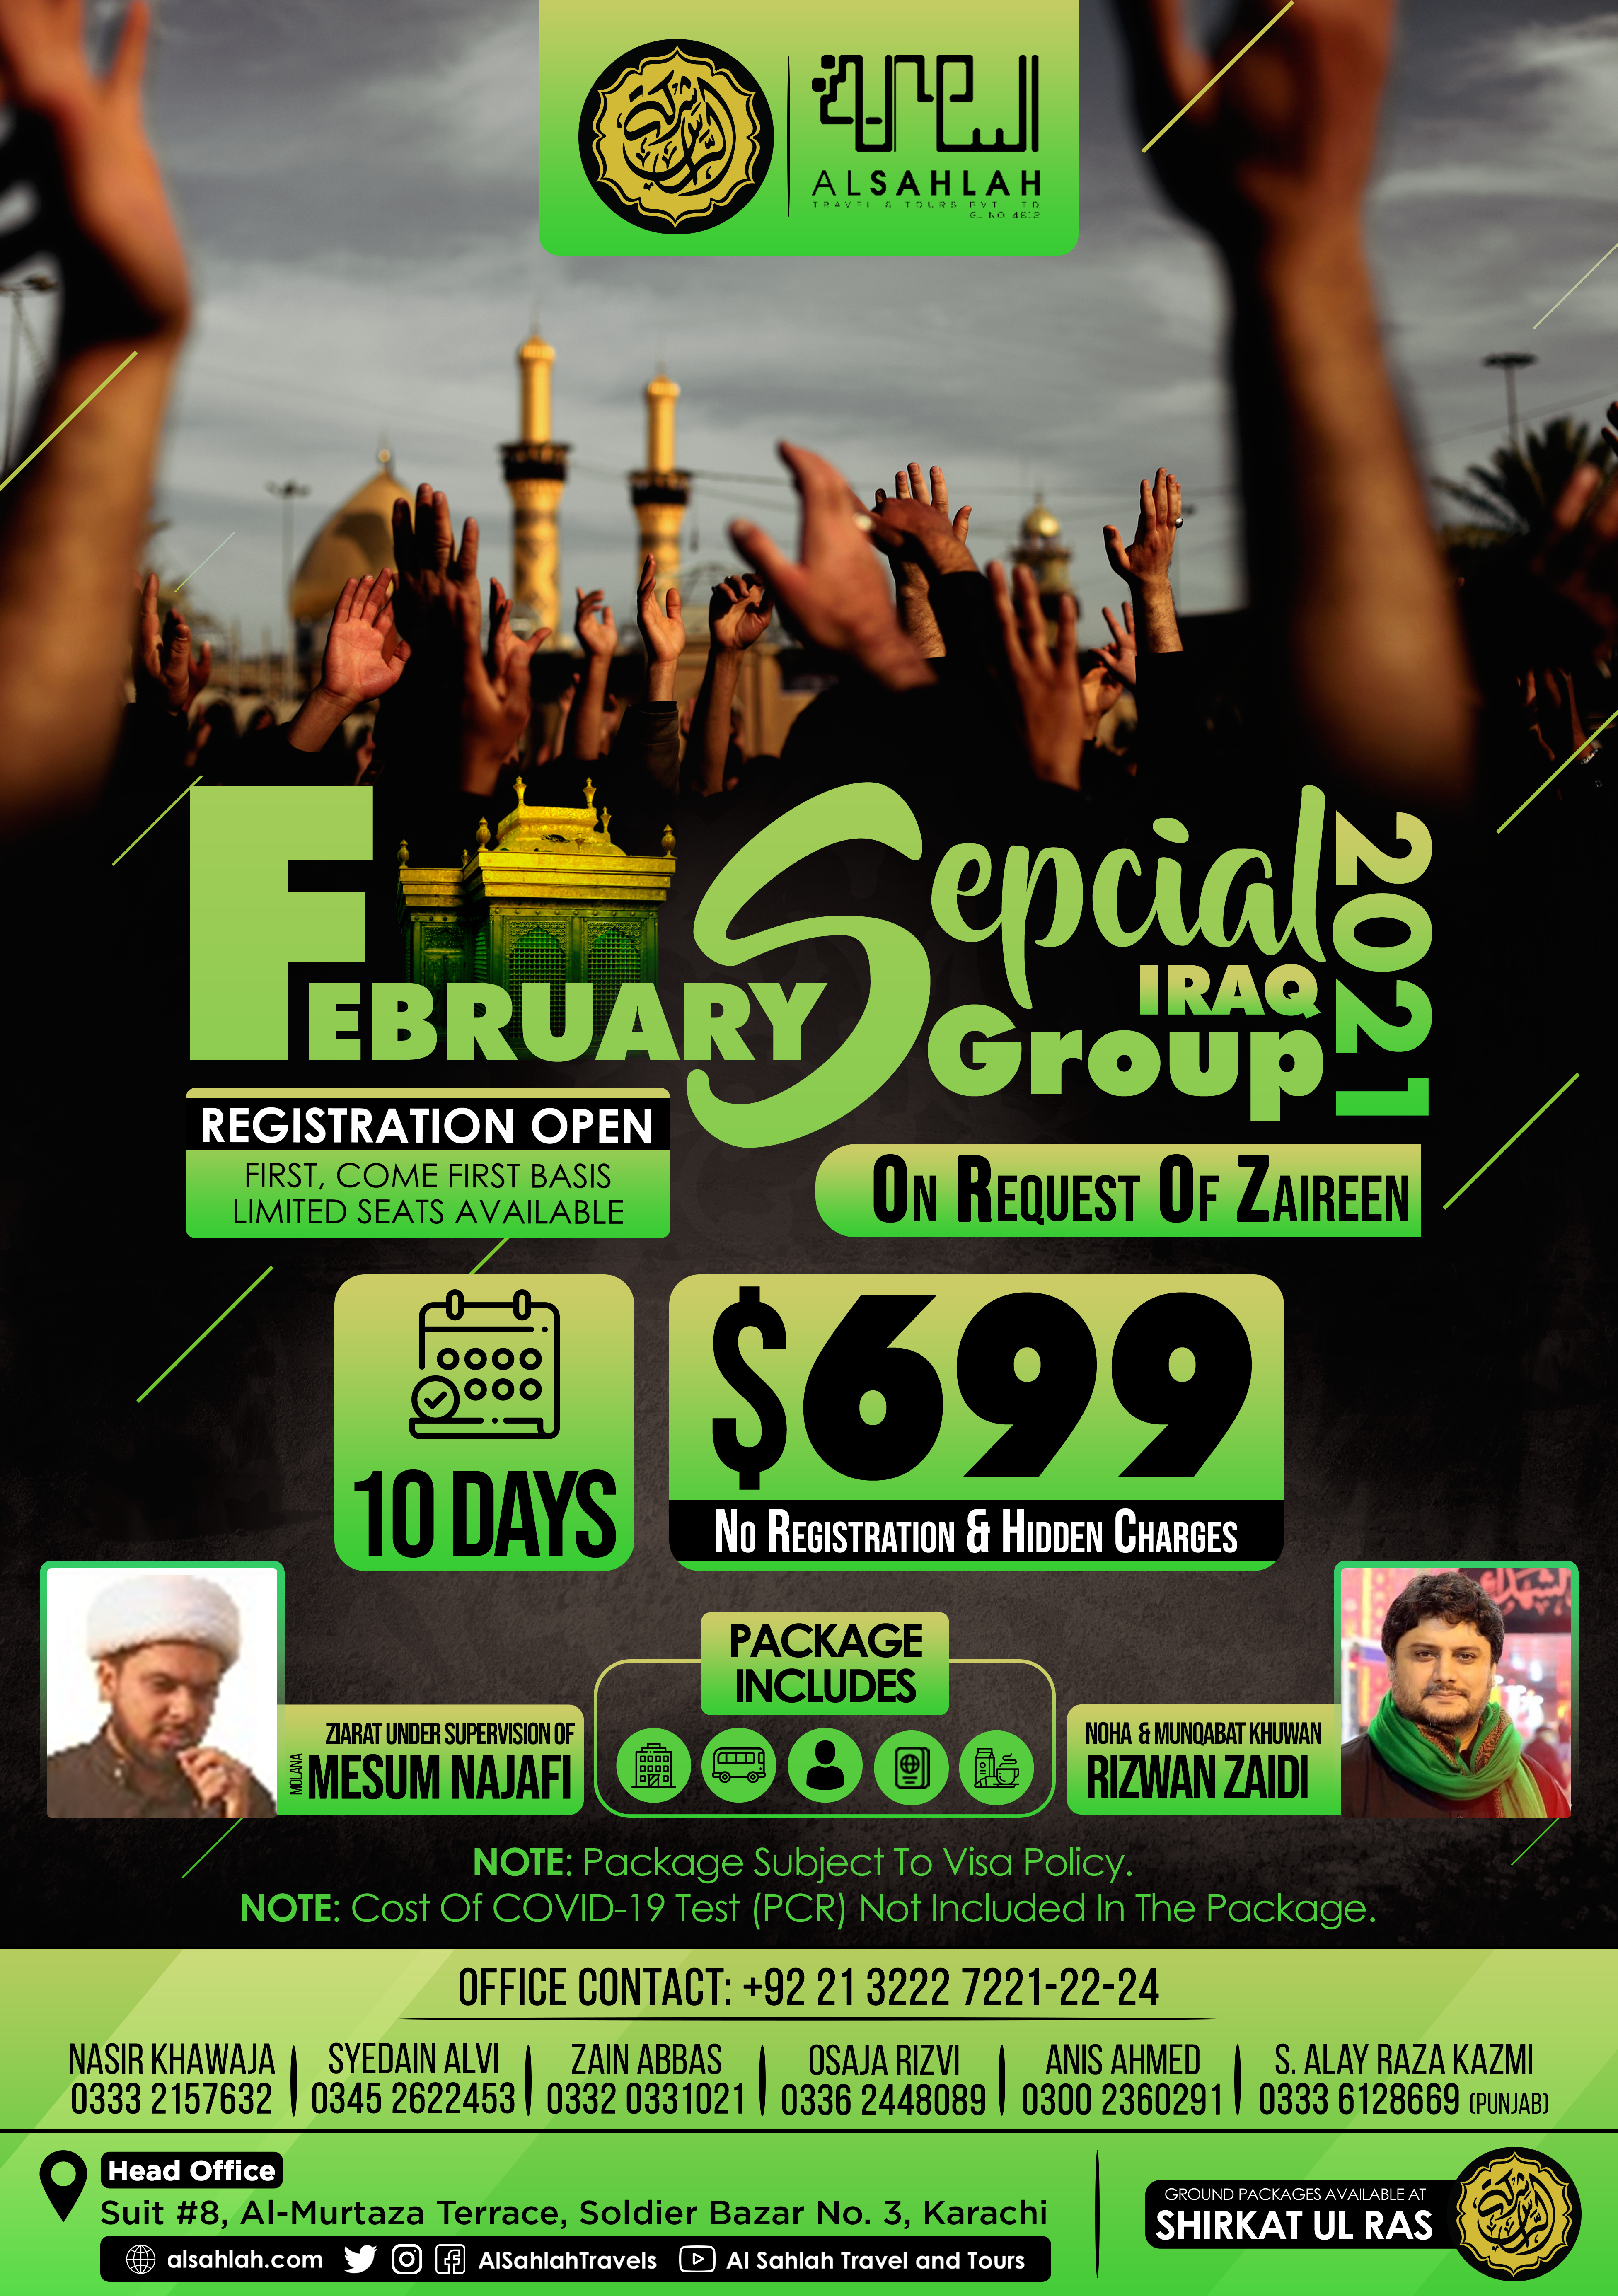 FEBRUARY SPECIAL IRAQ GROUP